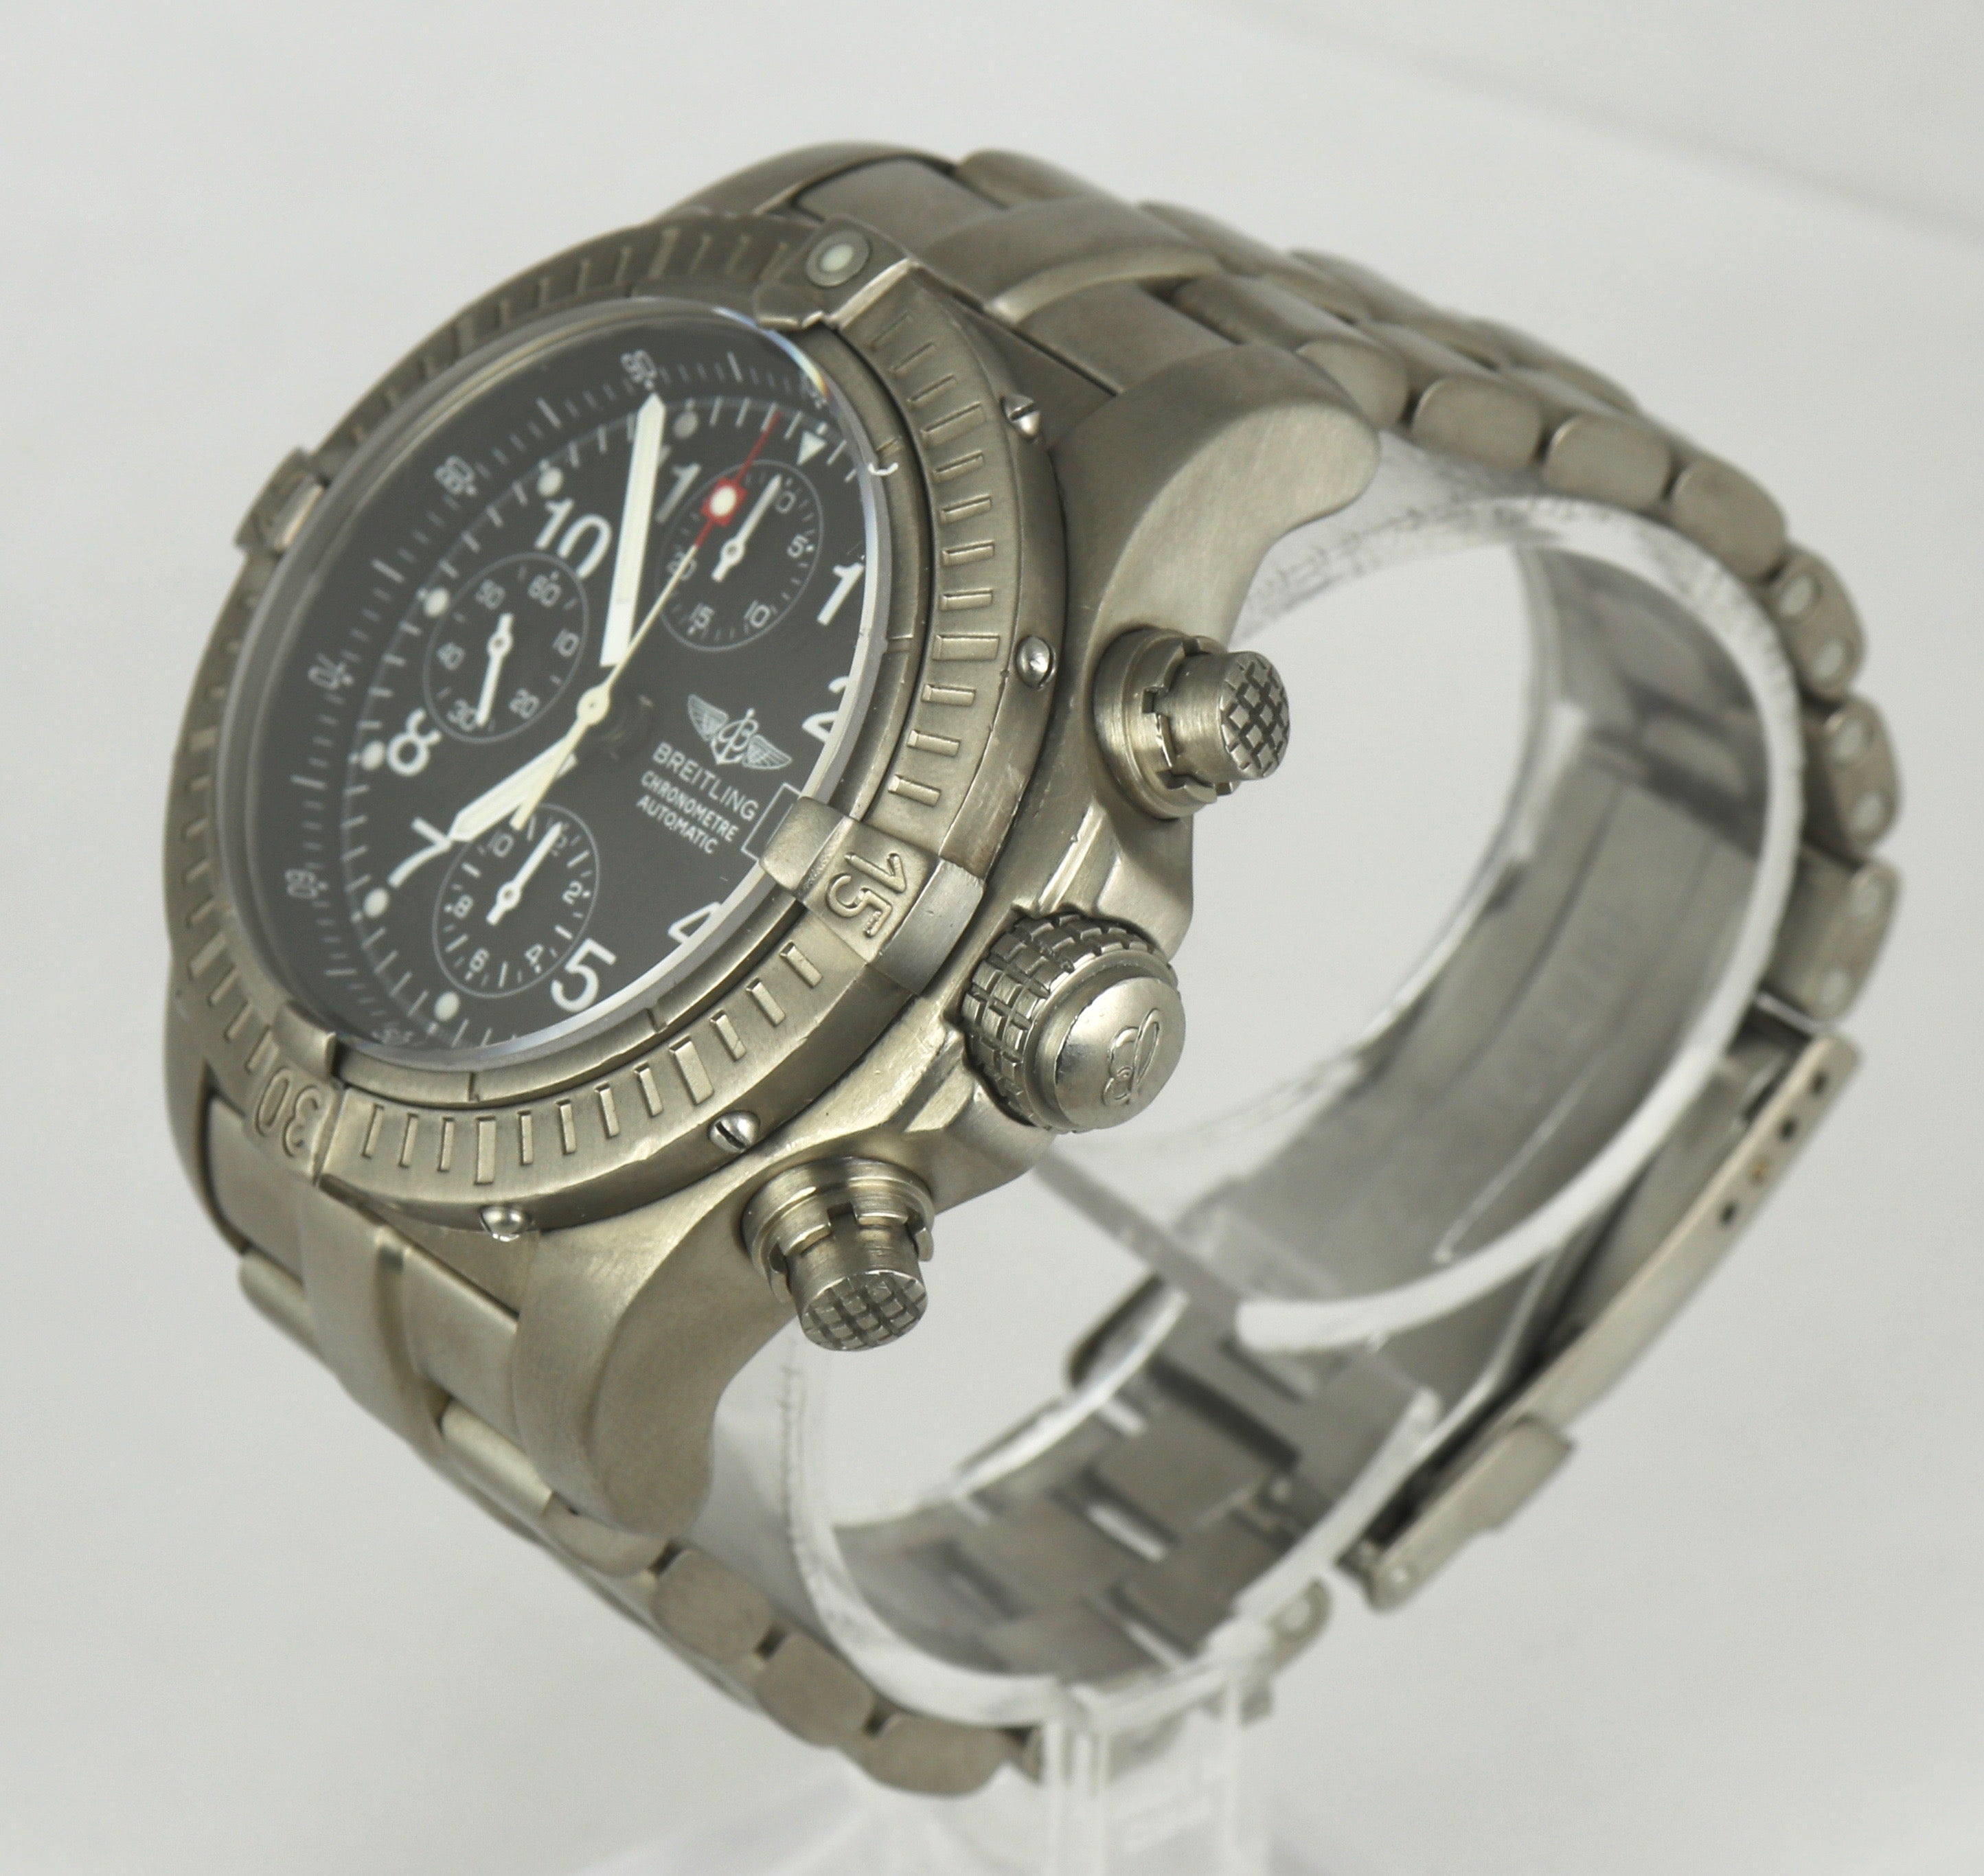 MINT Breitling Chrono Avenger E13360 Chronograph Titanium Automatic 44mm Black